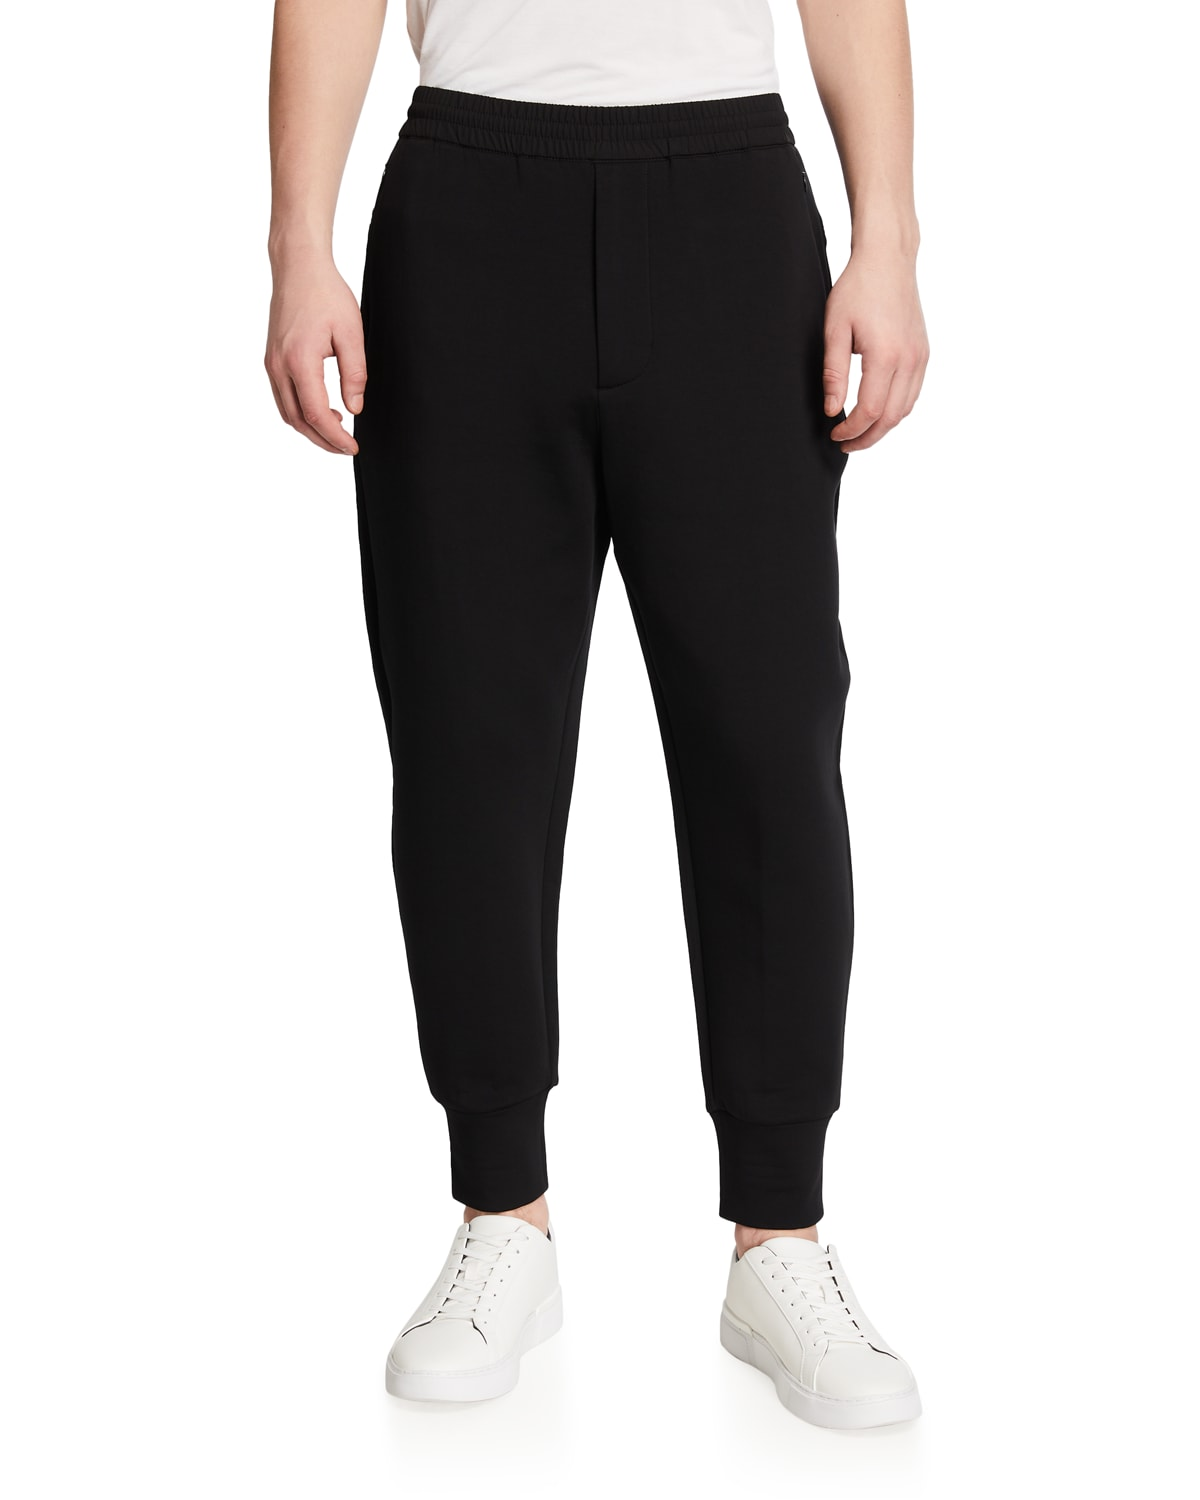 Men's Pleated Travel Stretch Jogger Pants